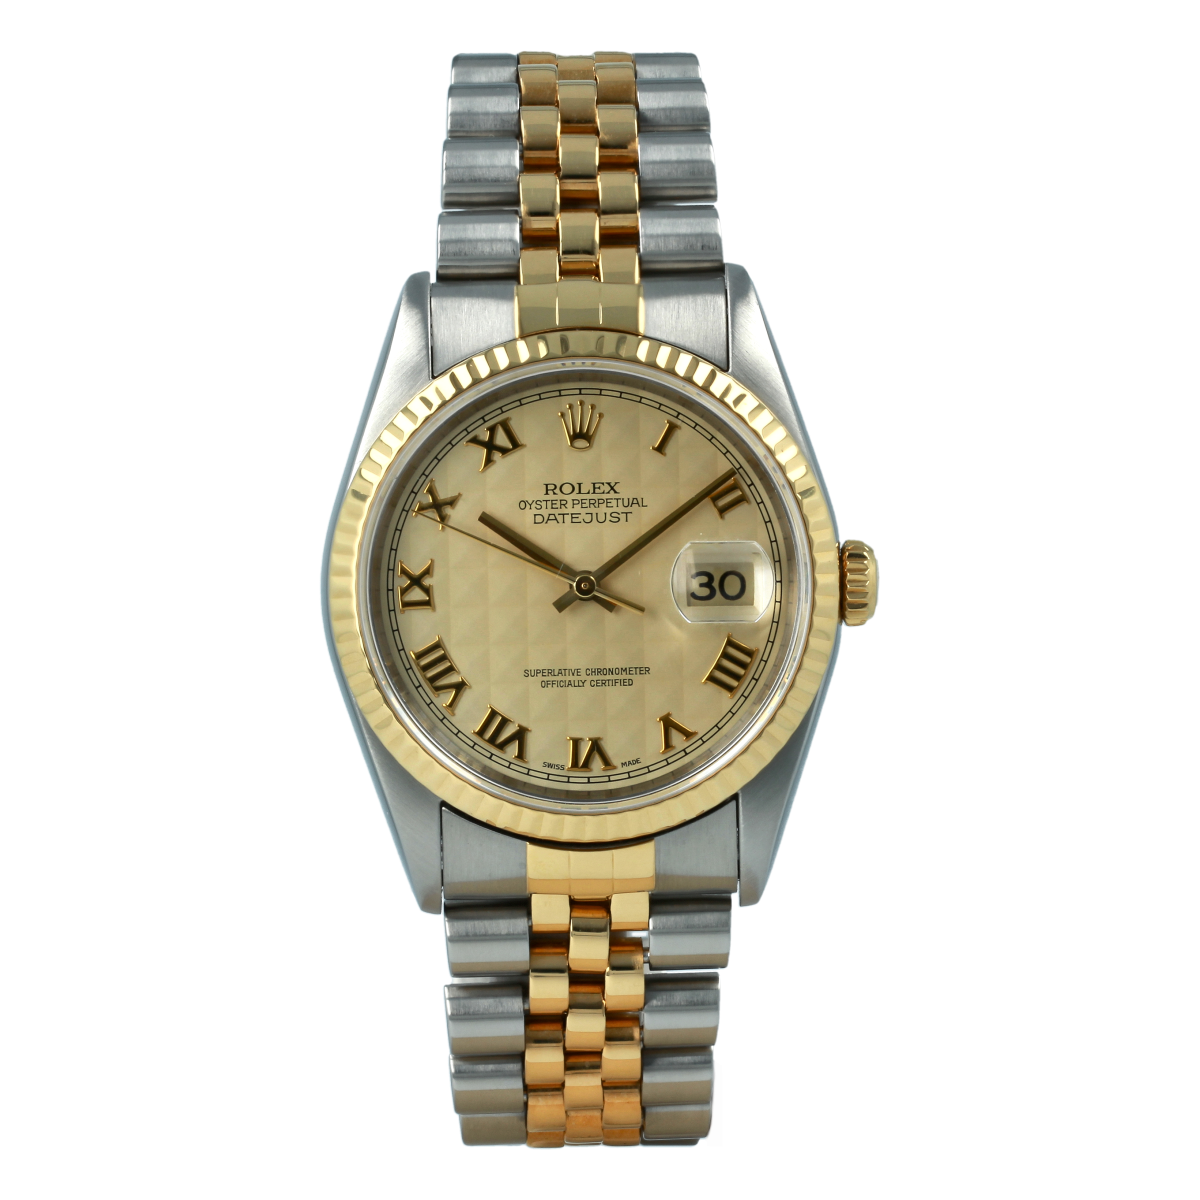 Rolex Datejust 16233 36mm Pyramid Dial Steel and Yellow Gold | Buy pre-owned Rolex watch